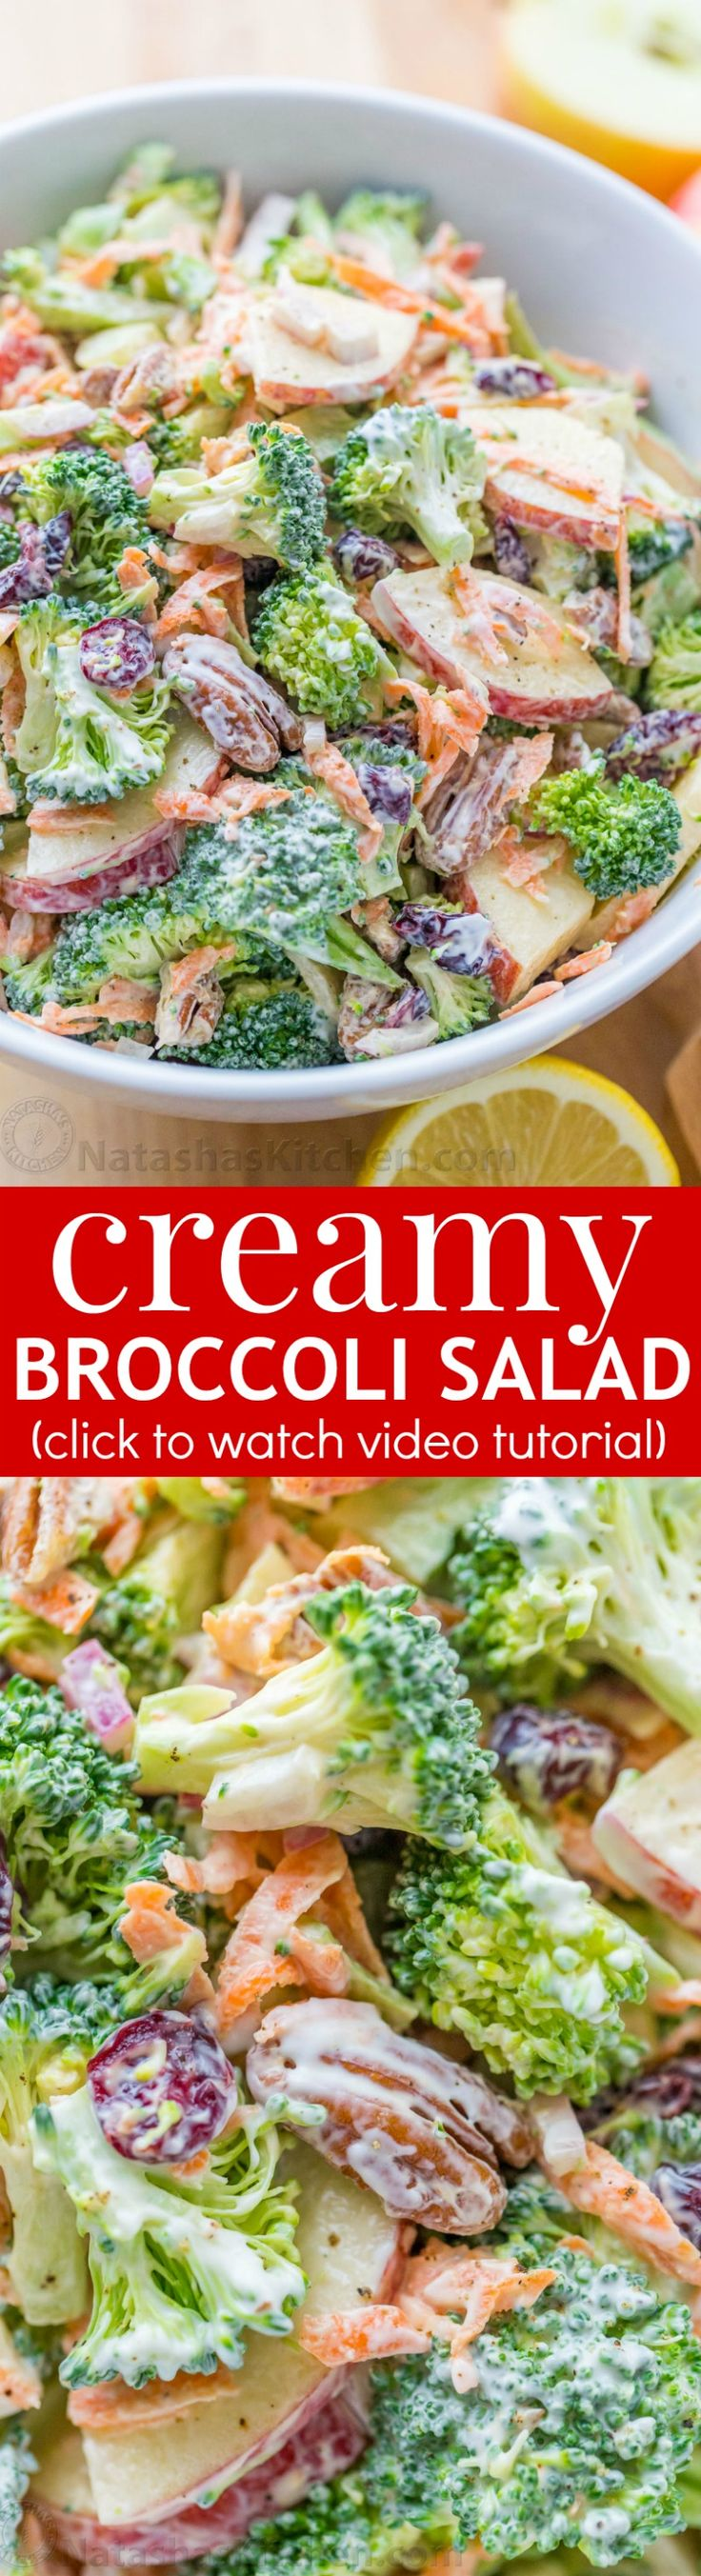 The ORIGINAL Broccoli Salad Recipe - loaded with broccoli, apples, craisins and pecans, and tossed in a creamy lemon dressing. A must-try broccoli salad! | natashaskitchen.com